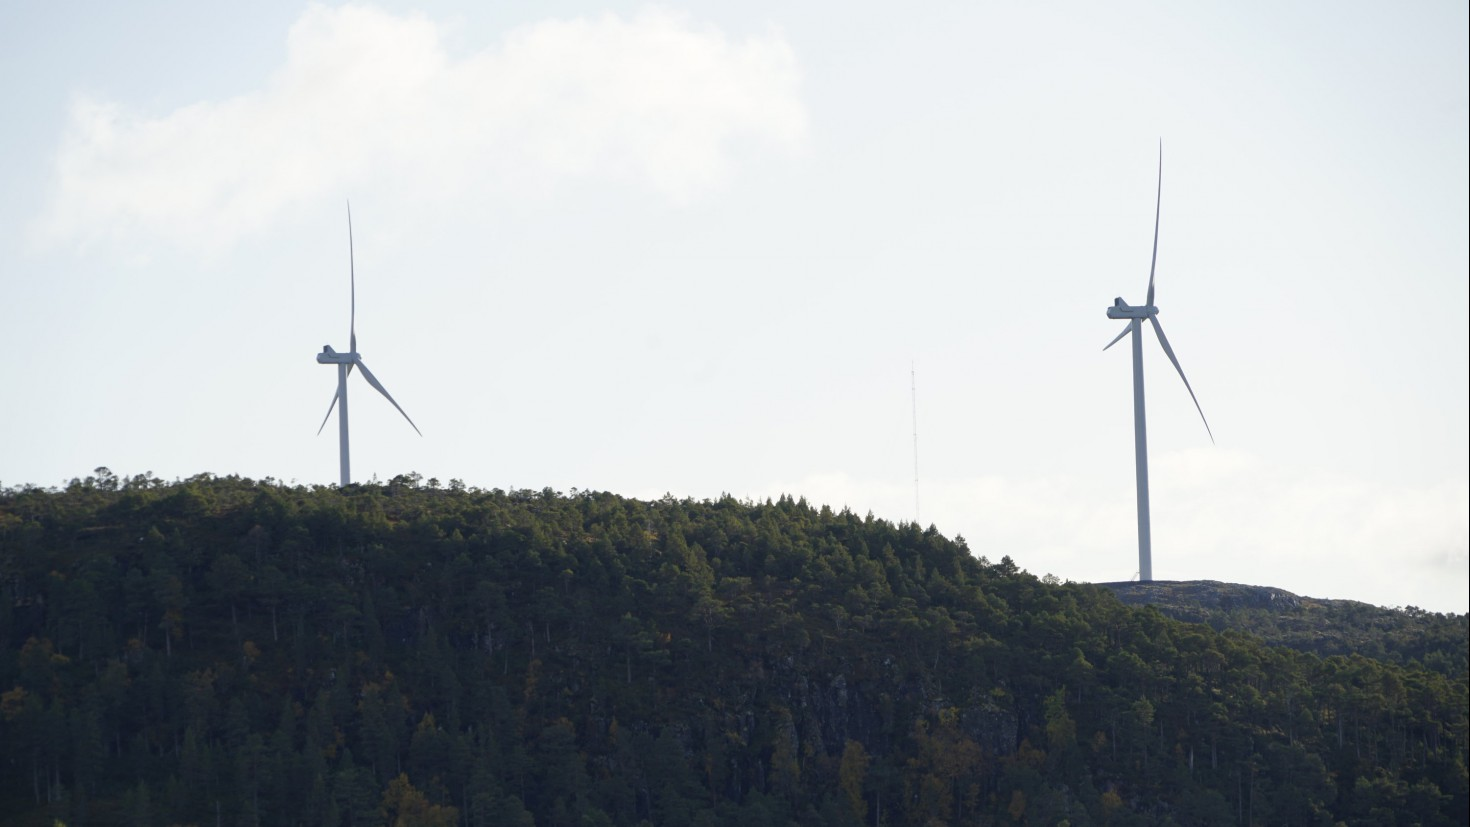 How much wind power is produced depends on the weather. The expansion of wind energy thus makes it more important for power producers to have access to reliable long-term forecasts. Photo by Iselin Rønningsbakk / CICERO Center for International Climate Research.